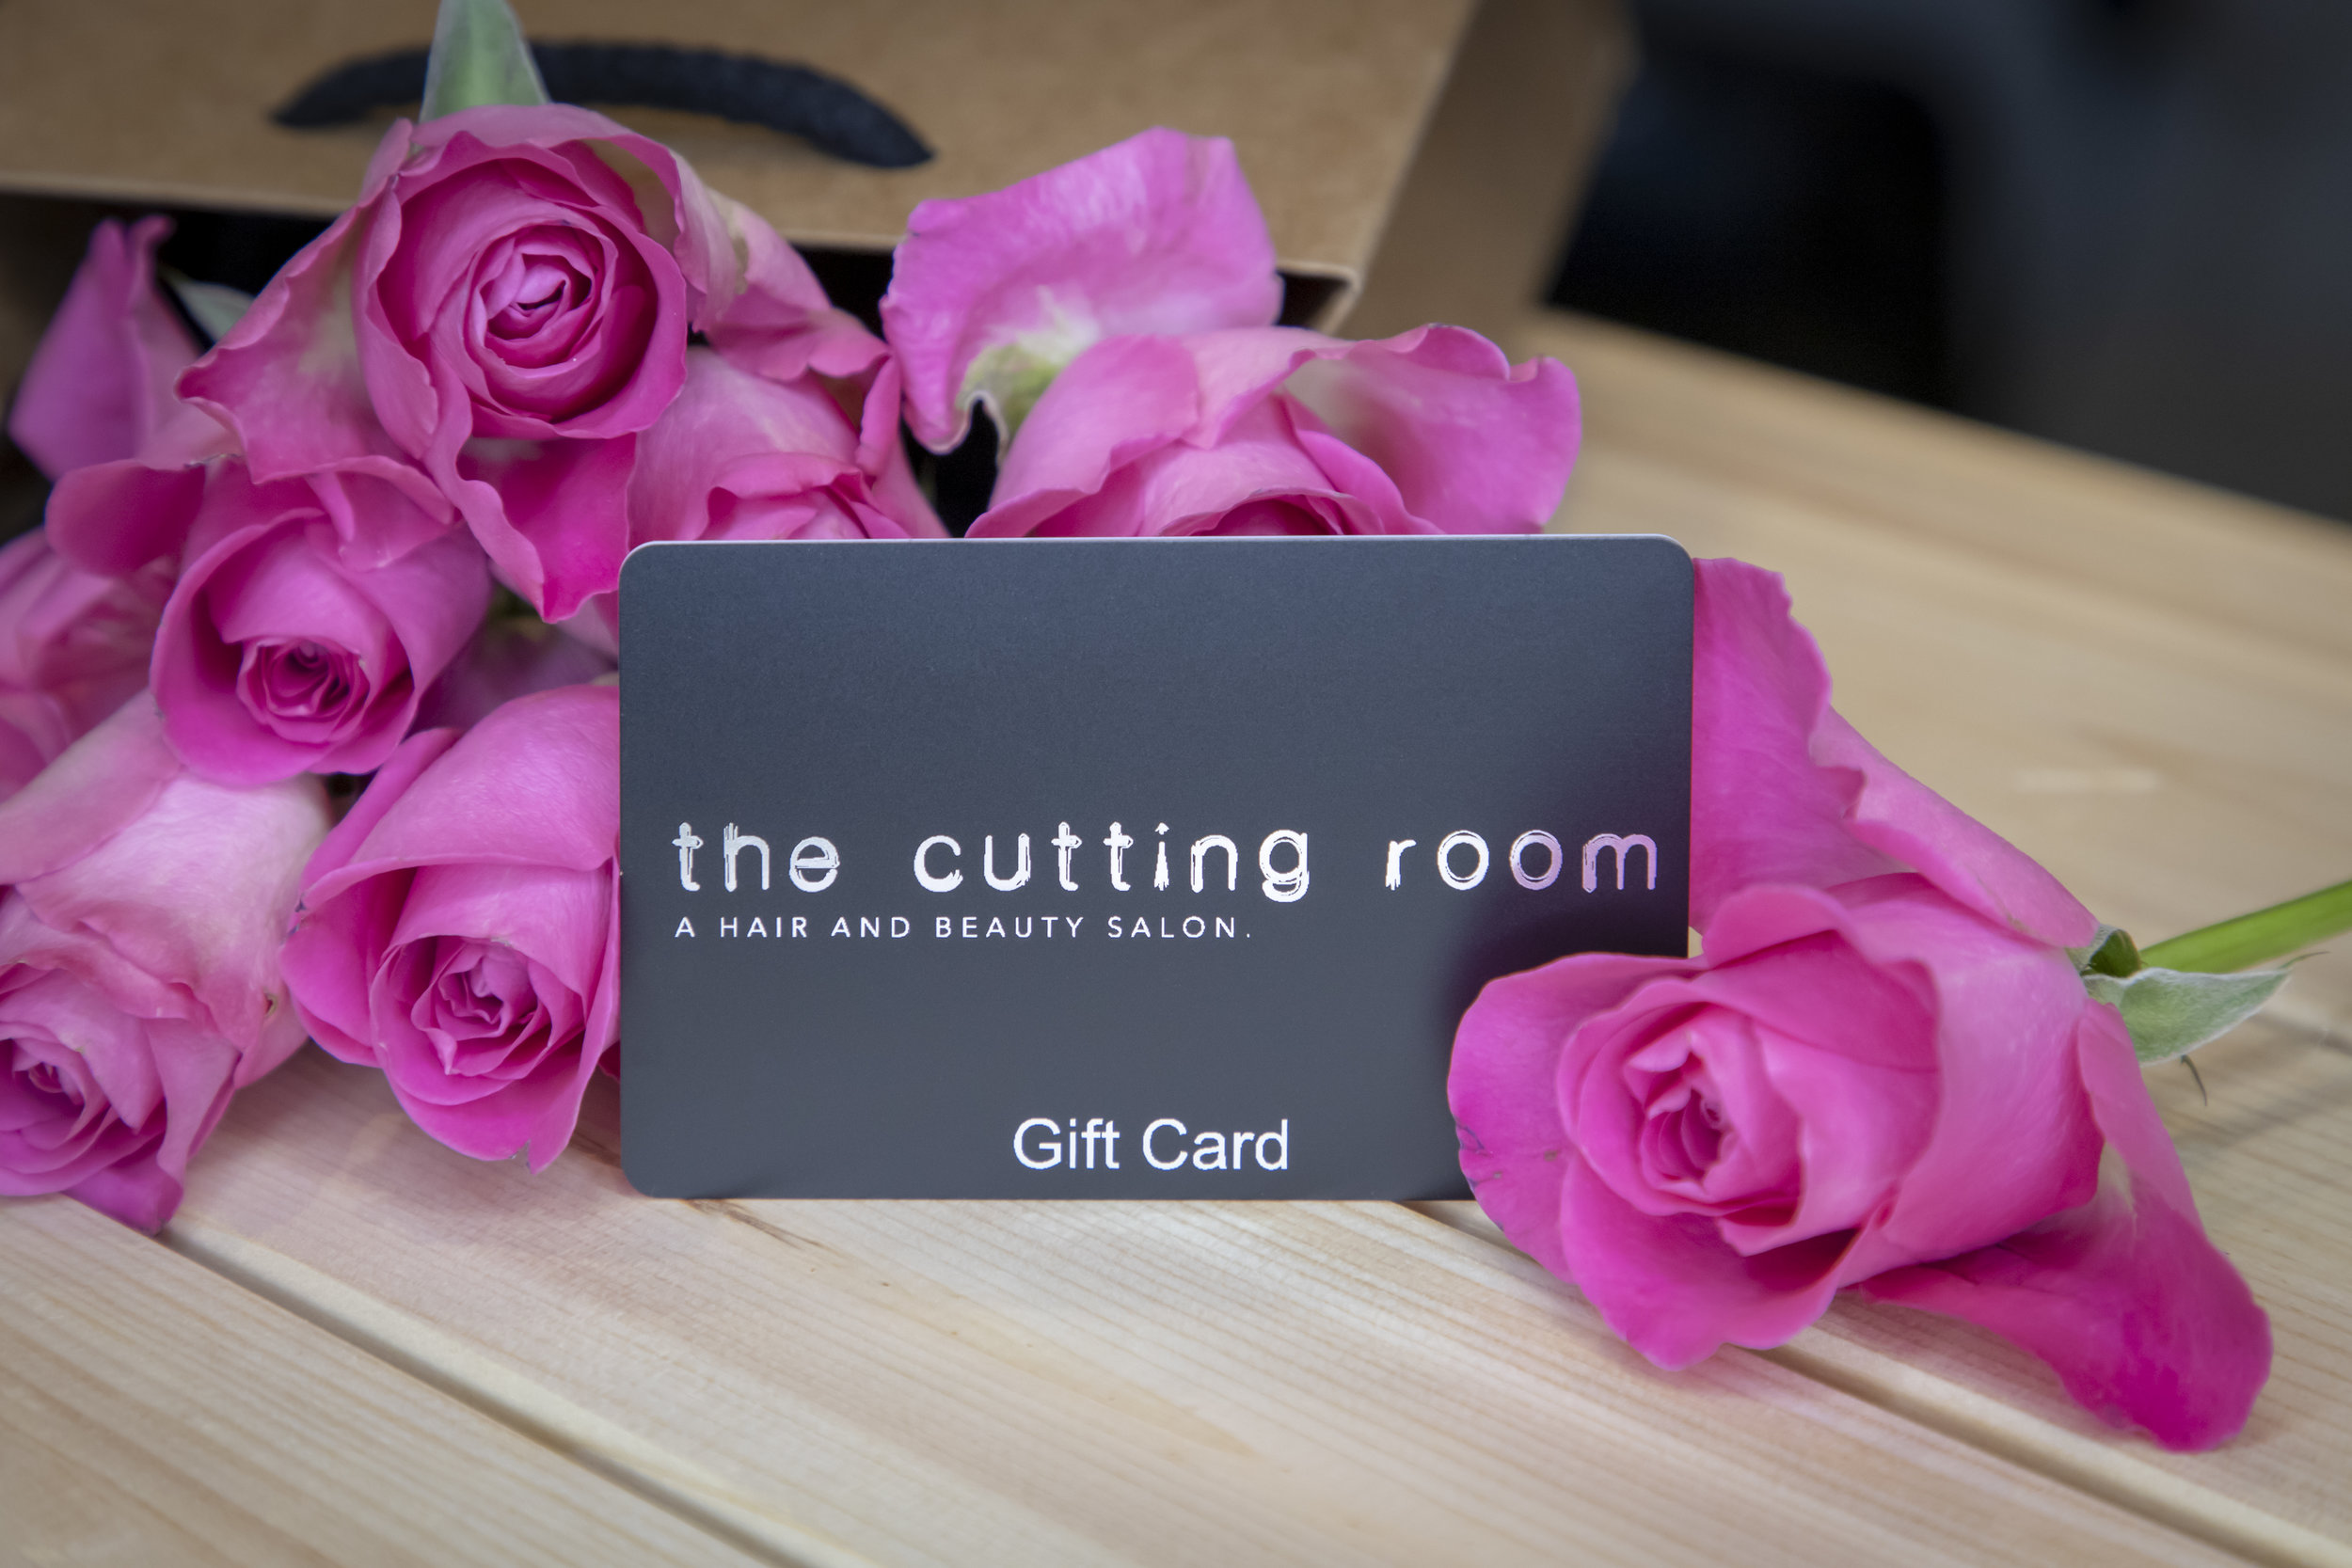 MOTHERS DAY GIFT CARDS - Our gift cards are available all year round for all hair and beauty services including our take home products. If you spend £100 on any gift card this month we will top it up for FREE with an extra £20! Just pop into the salon for this amazing deal. Our gift cards are valid for 3 months from the date of purchase. For the month of March we will set the date of purchase to Mothers Day for any package purchases.